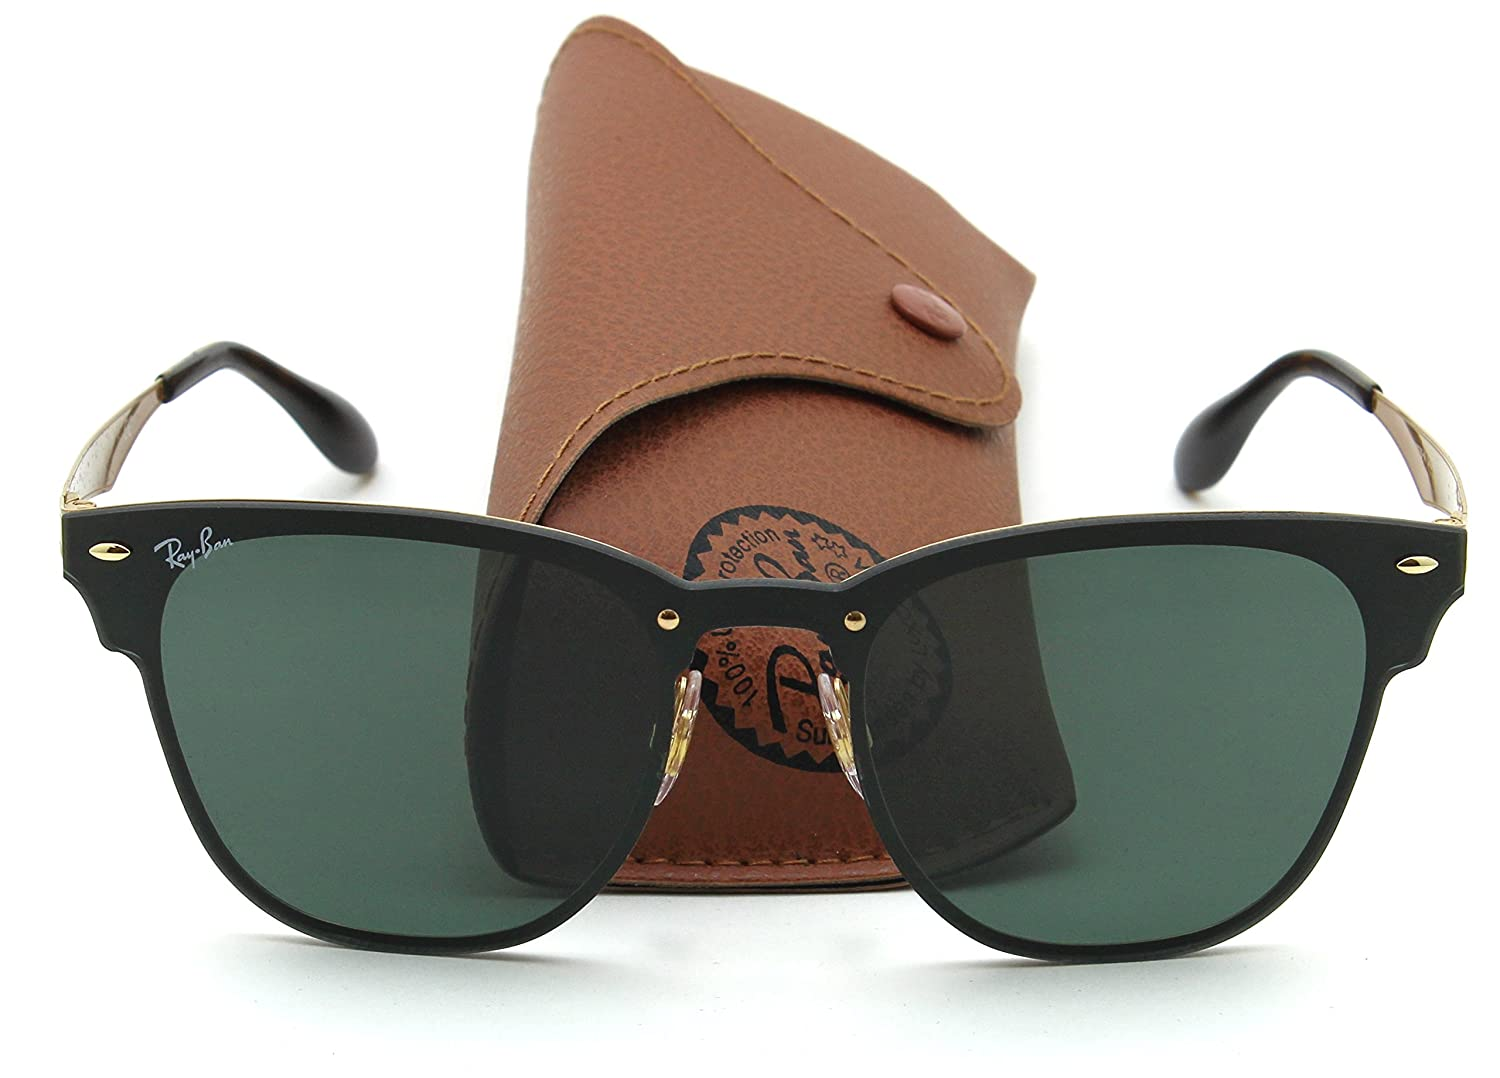 371f5eb86e Amazon.com  Ray-Ban RB3576N BLAZE CLUBMASTER Sunglasses 043 71